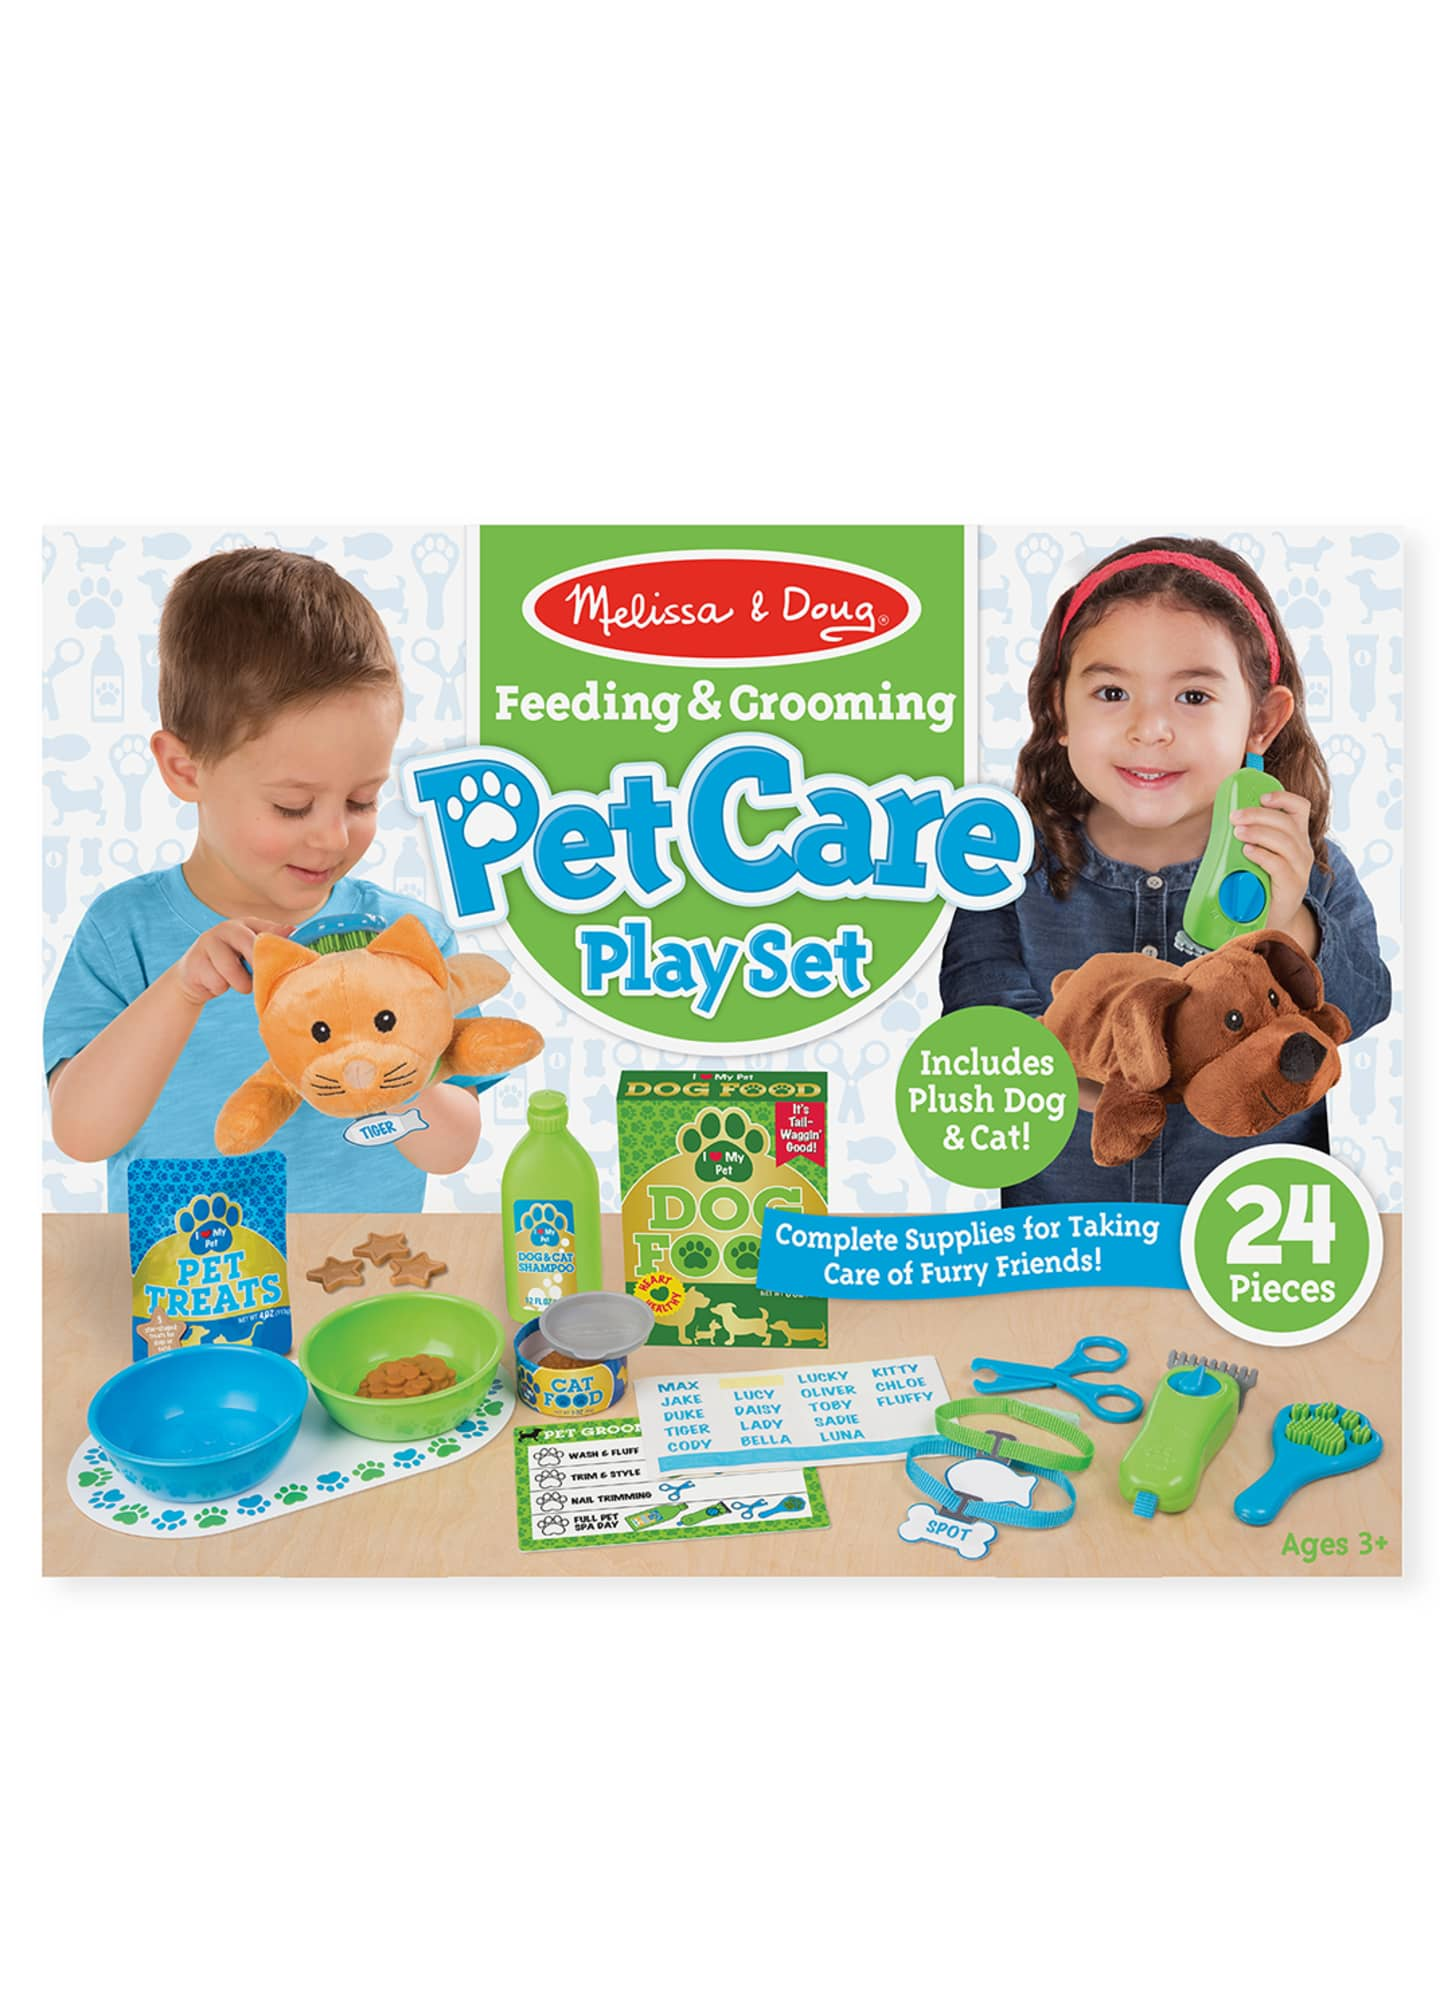 Image 2 of 3: Feeding & Grooming Pet Care Play Set